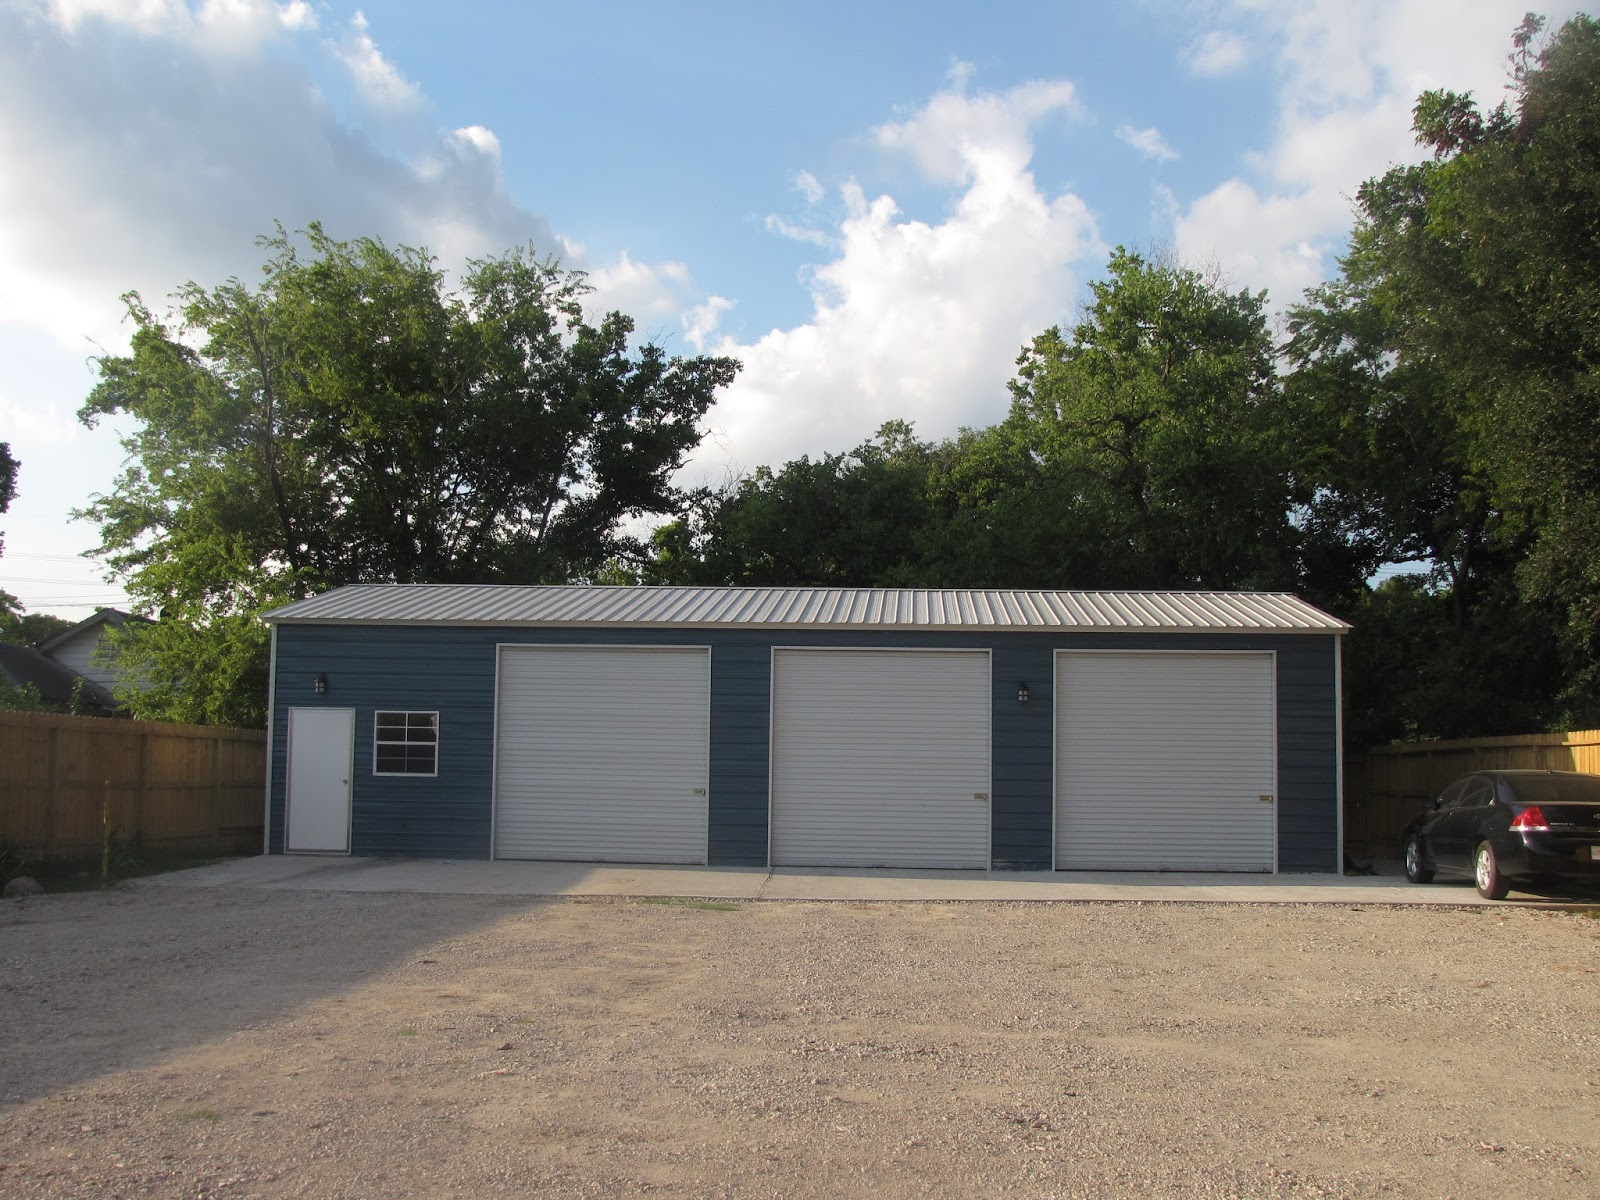 garage a garages attached and carport s with carports log carage berggren